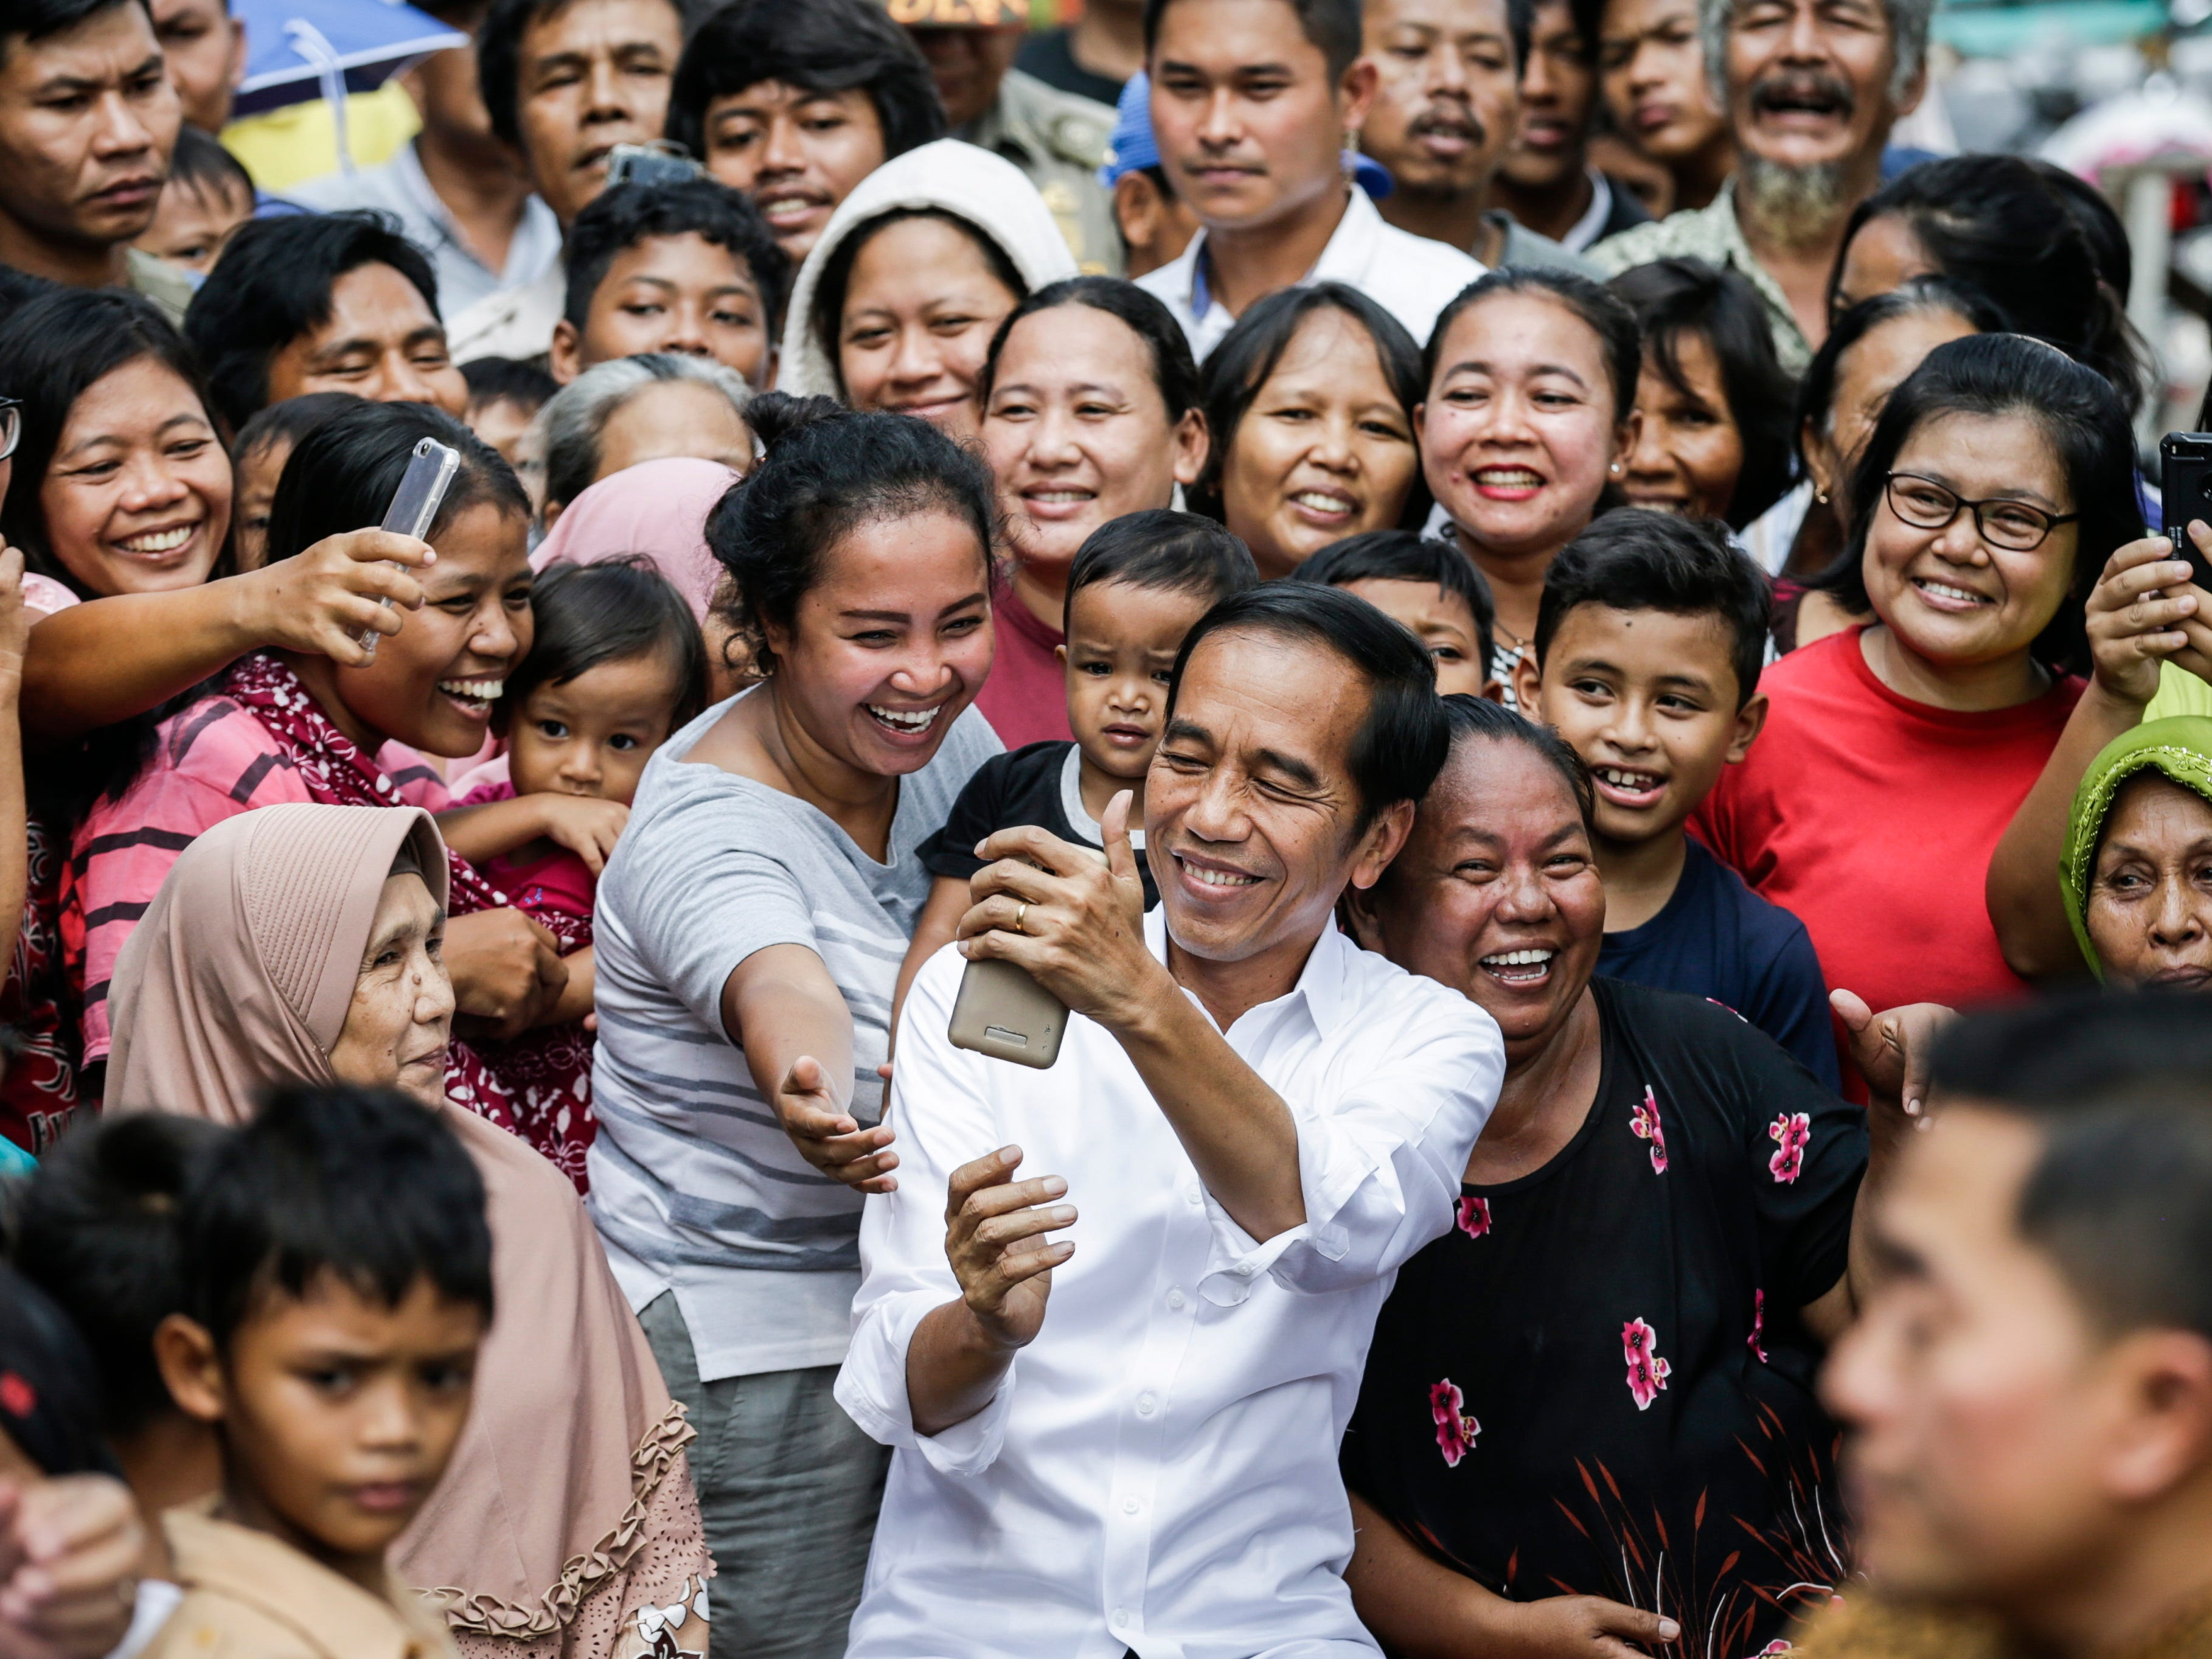 Indonesia's Incumbent President from the Indonesian Democratic Party of Struggle (PDIP) Joko Widodo (C) takes a selfie photograph with local residents after his victory speech following the announcement of the election results at a slum area in Jakarta, Indonesia, May, 21, 2019. Incumbent Indonesian President Joko Widodo was re-elected after winning the presidential election over his rival, retired General Prabowo Subianto, the election commission announced early on May 21, 2019.